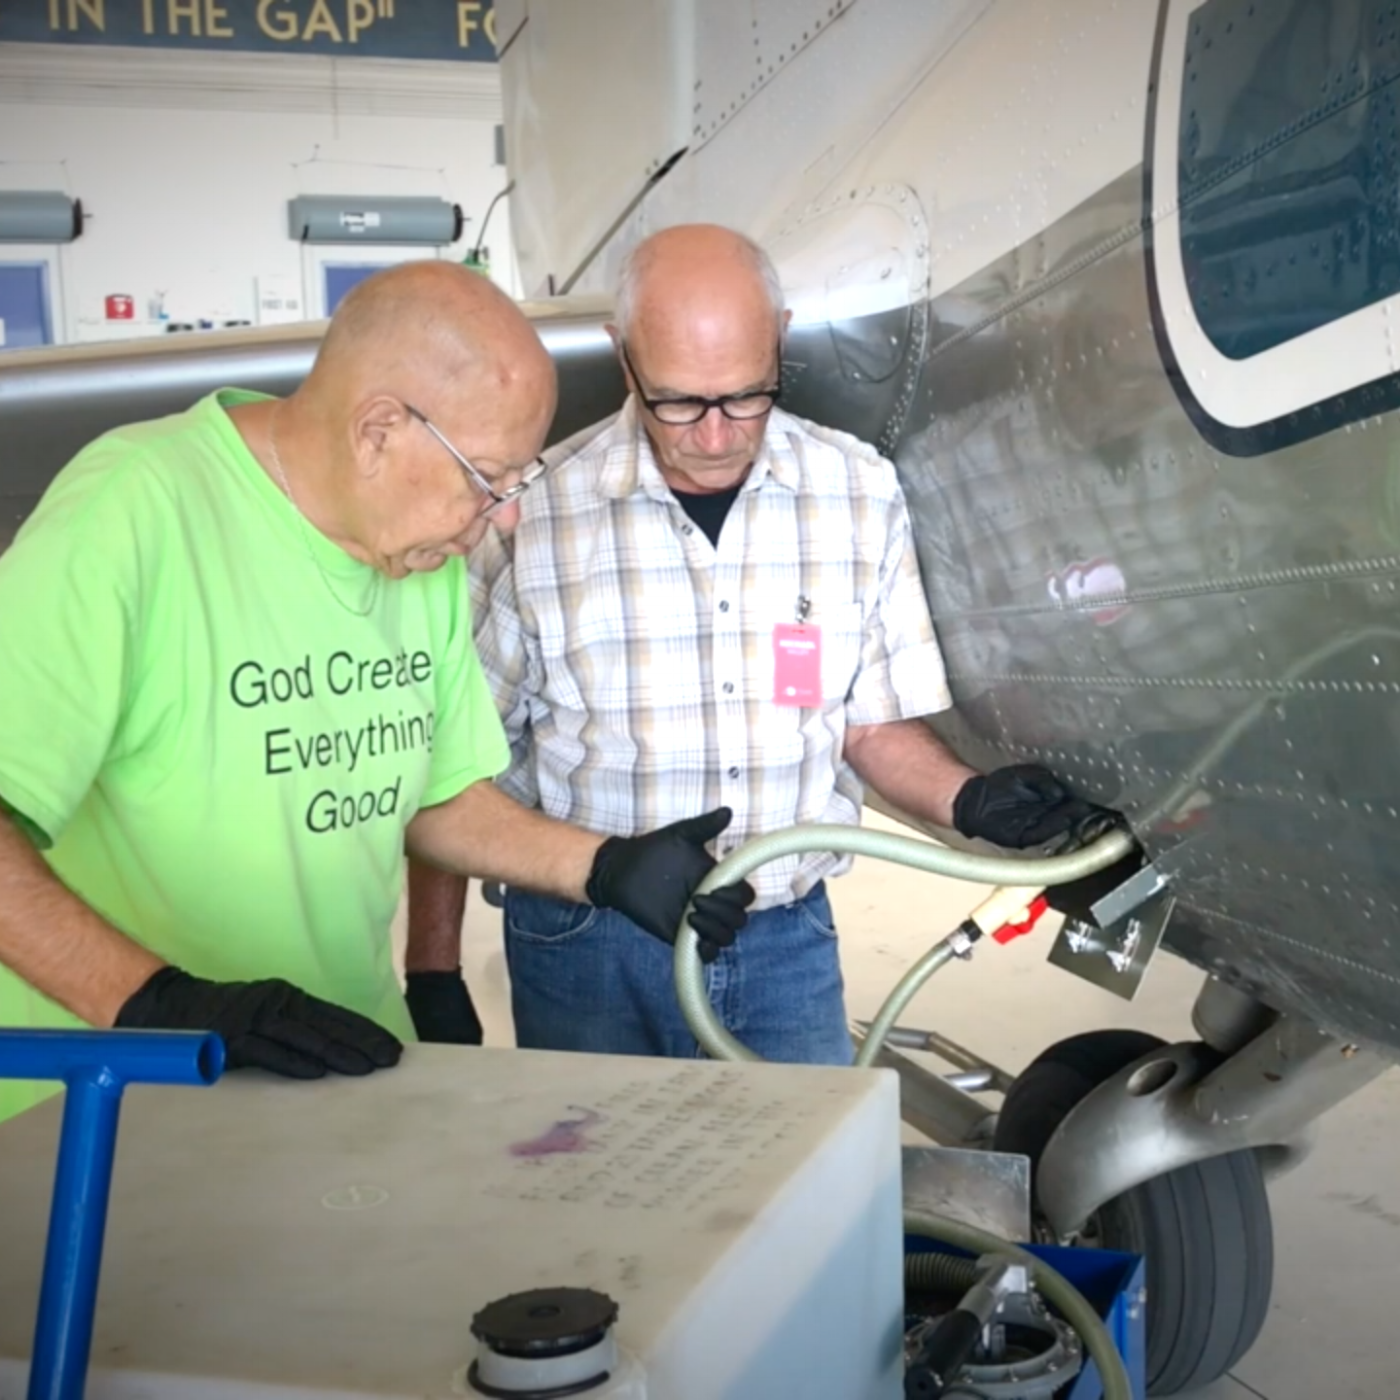 2018 Volunteer of the Year shows how to clean the sewage compartment on the plane.